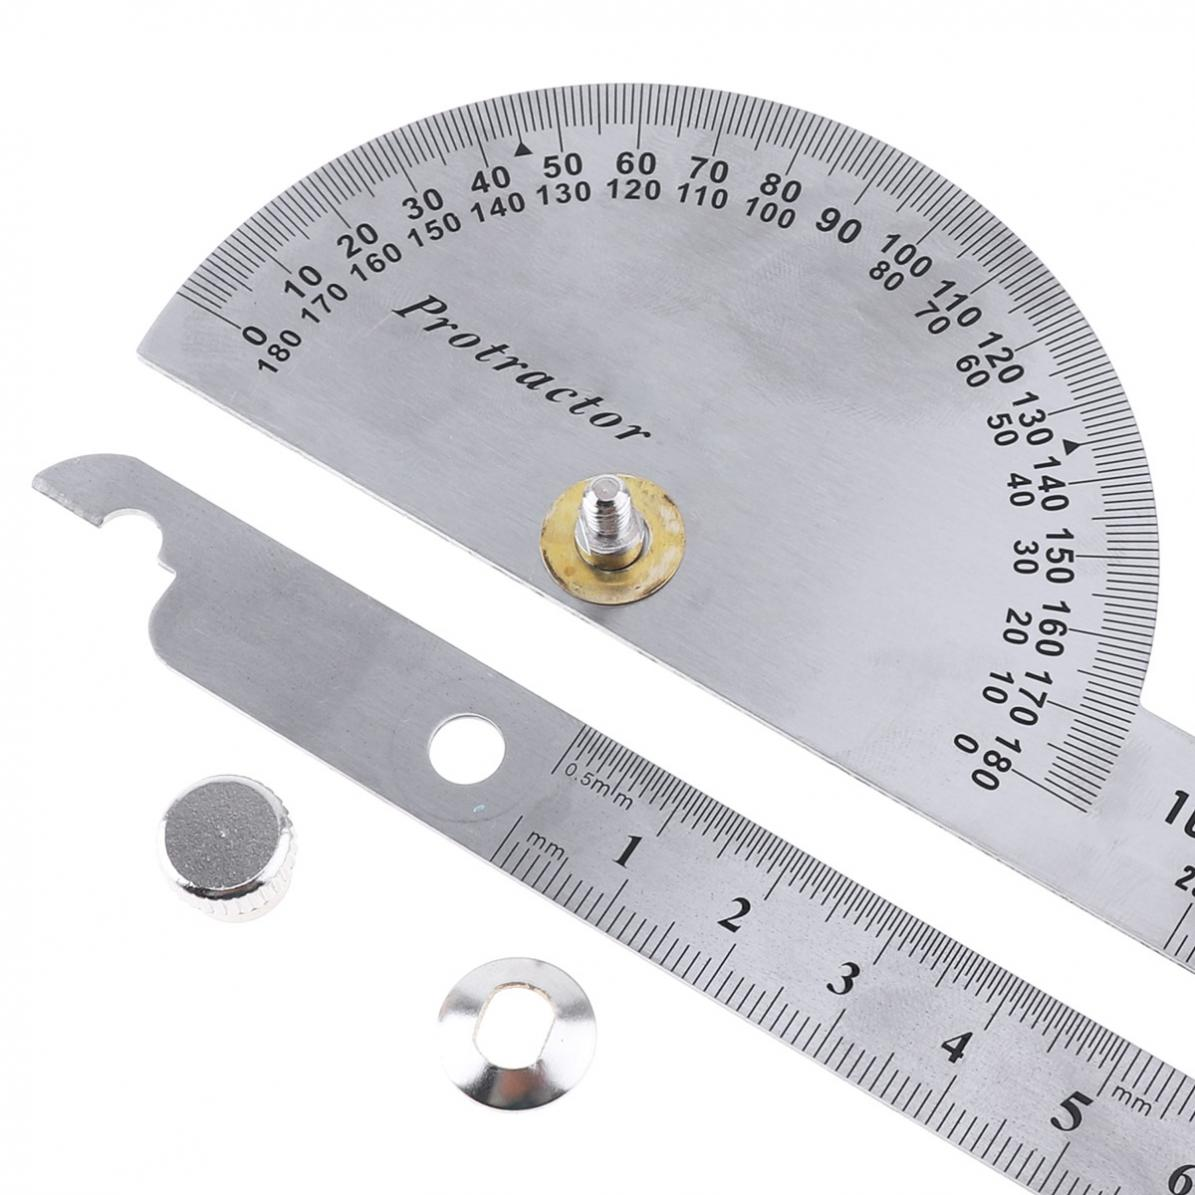 0-180-Stainless-Steel-Round-Head-Dual-Arm-Protractor-Angle-Finder-Rotary-Ruler miniature 3